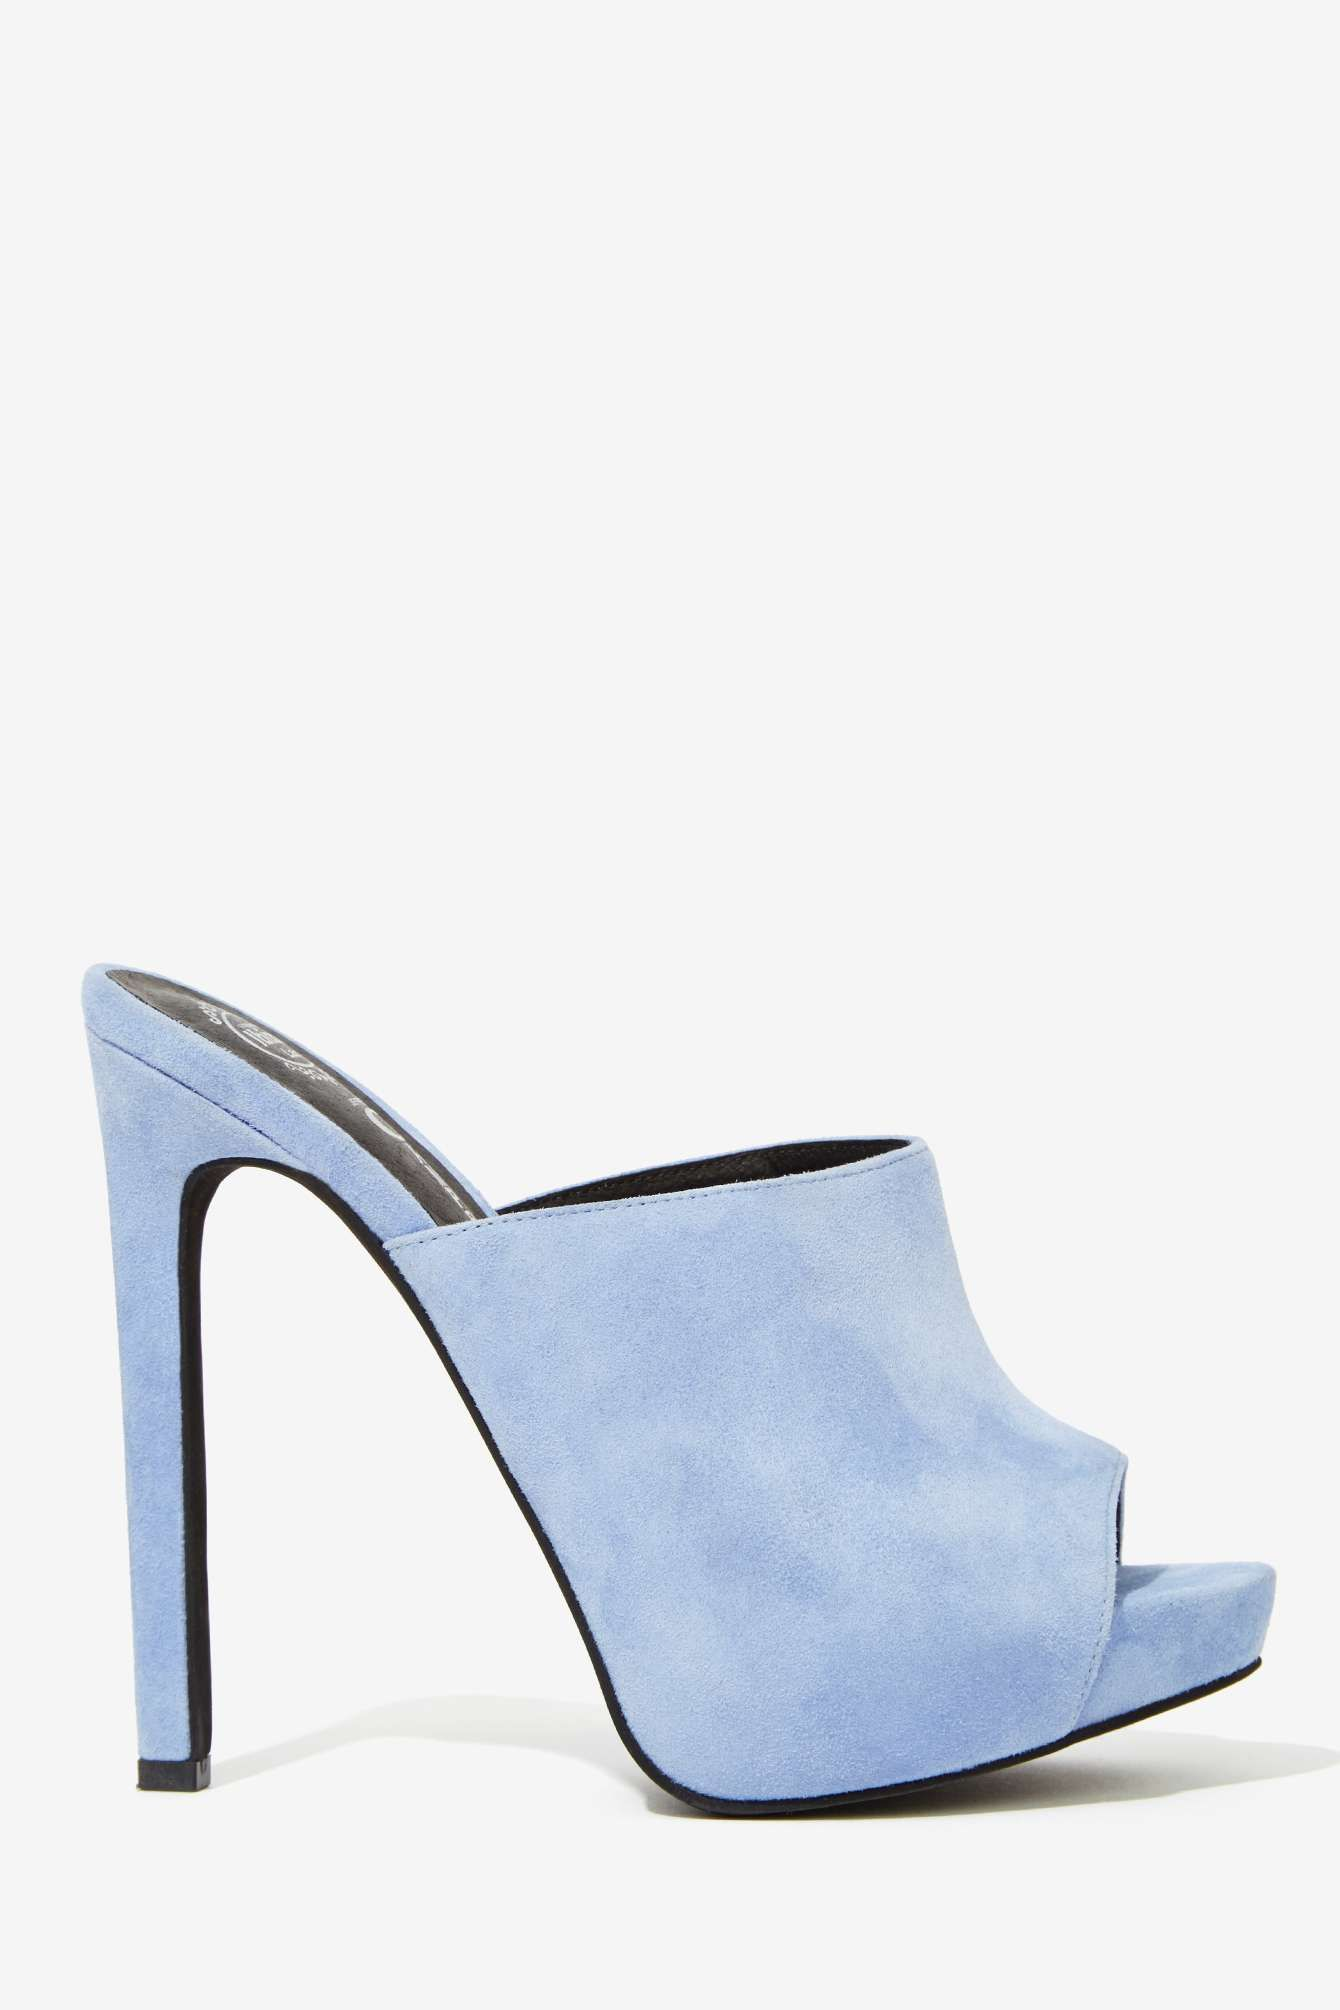 Blue Shoes Mule Suede And Campbell Powder Jeffrey Robert's wFqUYXxnv